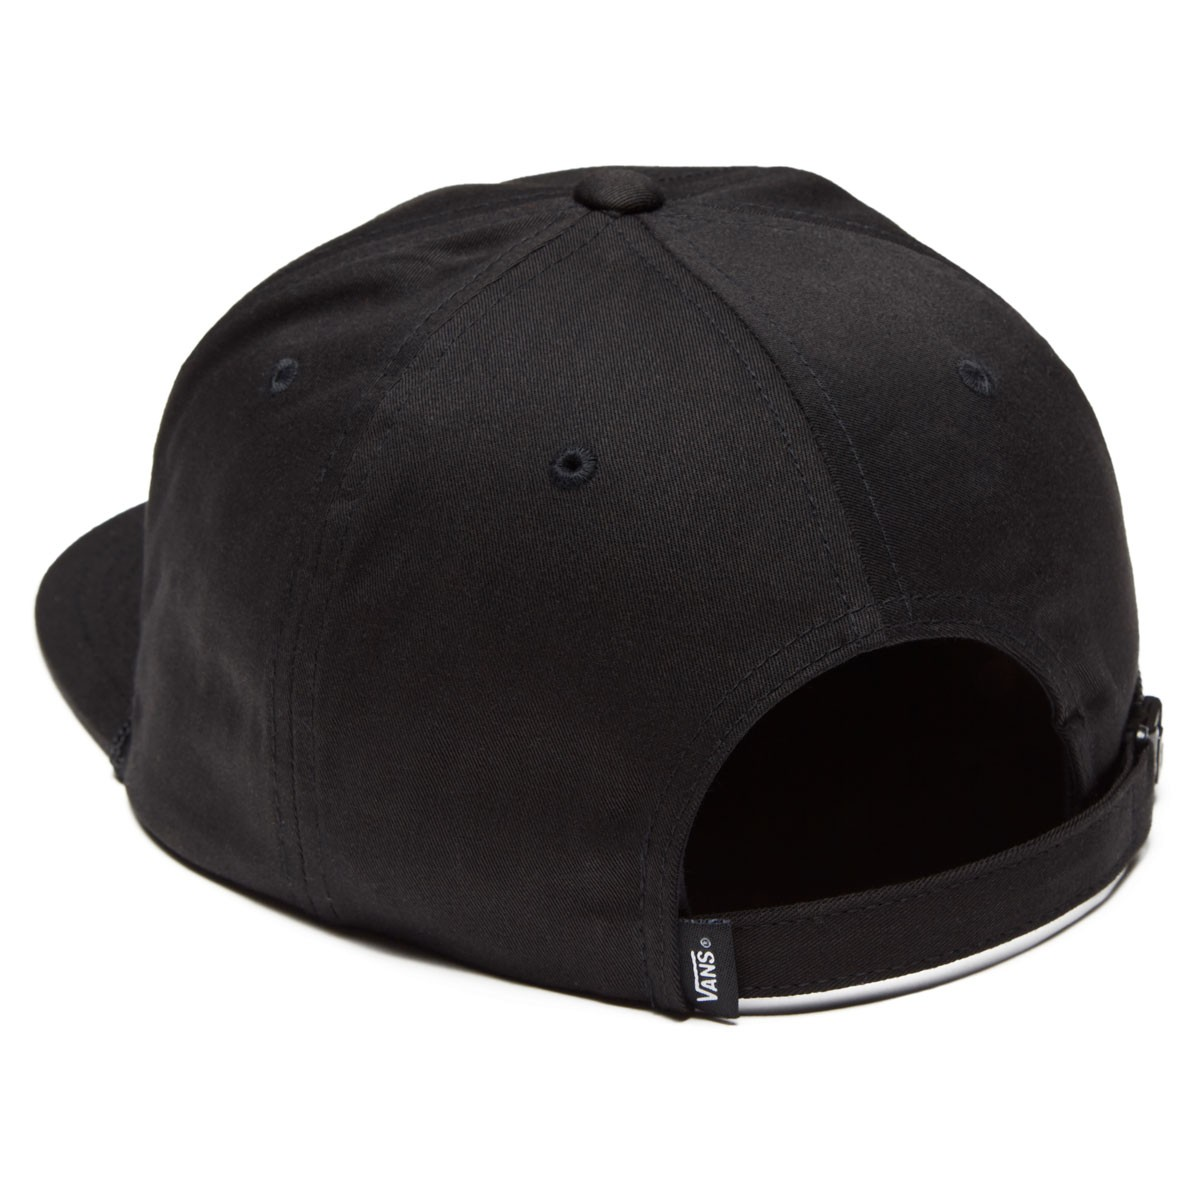 4e0f8b10f36 Vans Sketch Tape Shallow Unstructured Hat - Black